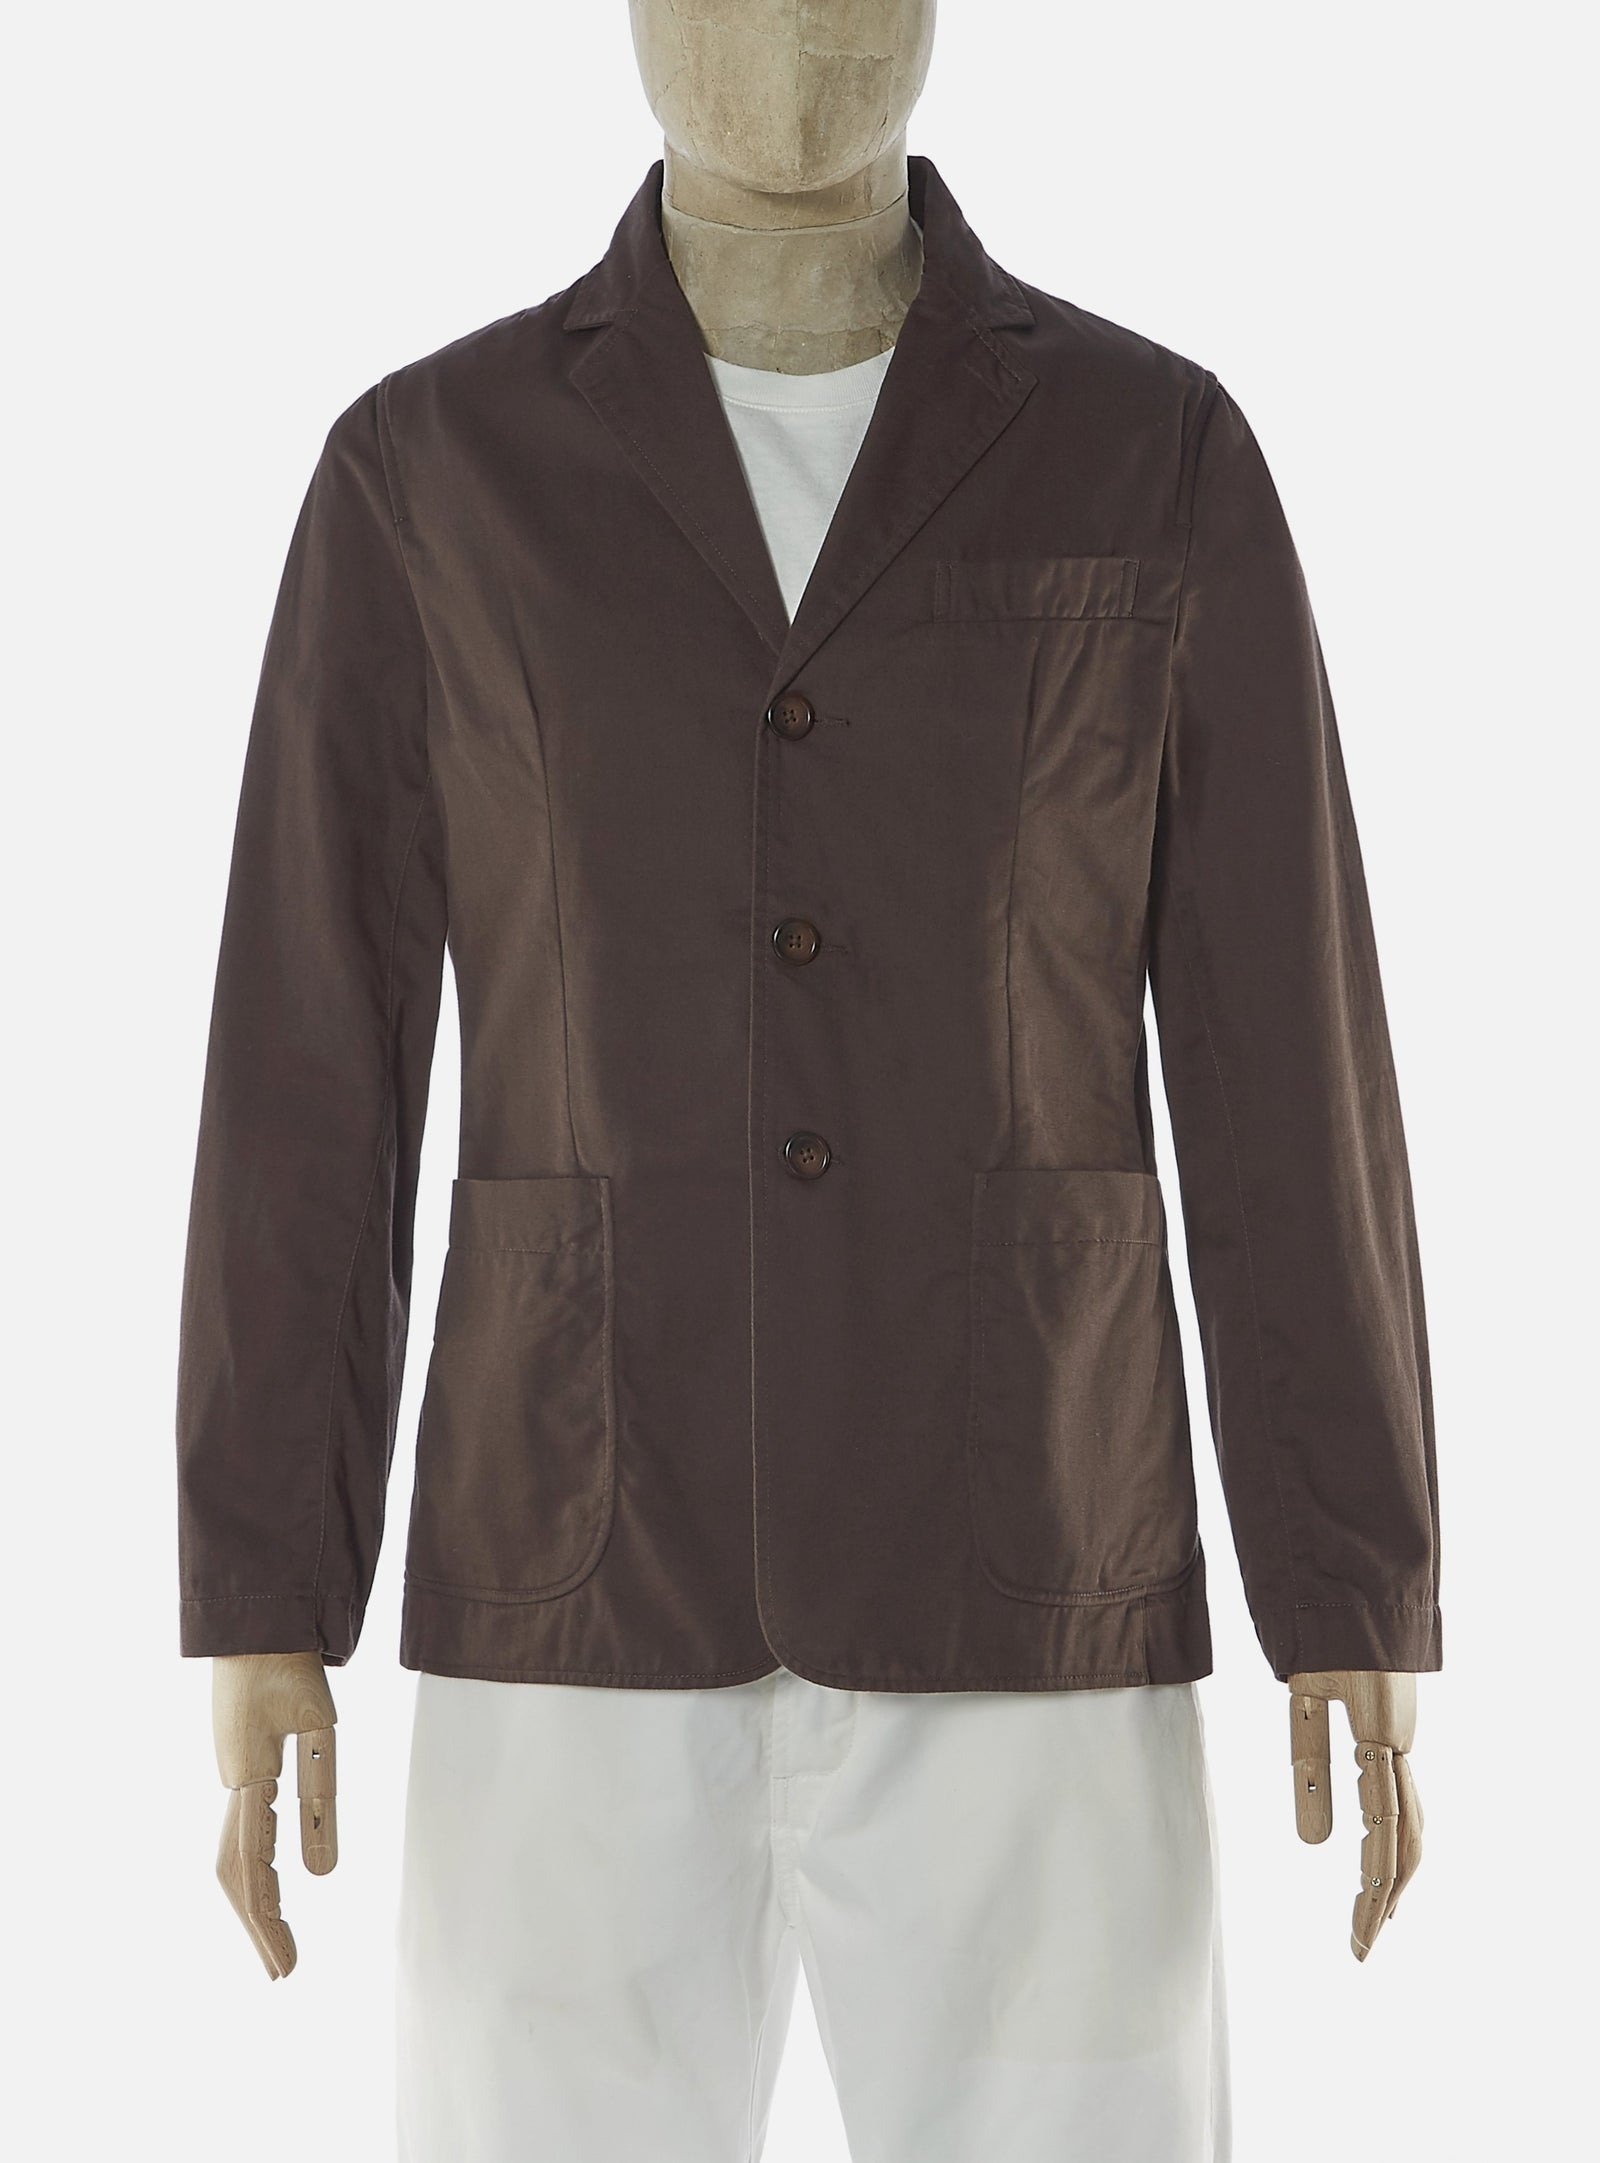 Universal Works London Jacket in Chocolate Twill